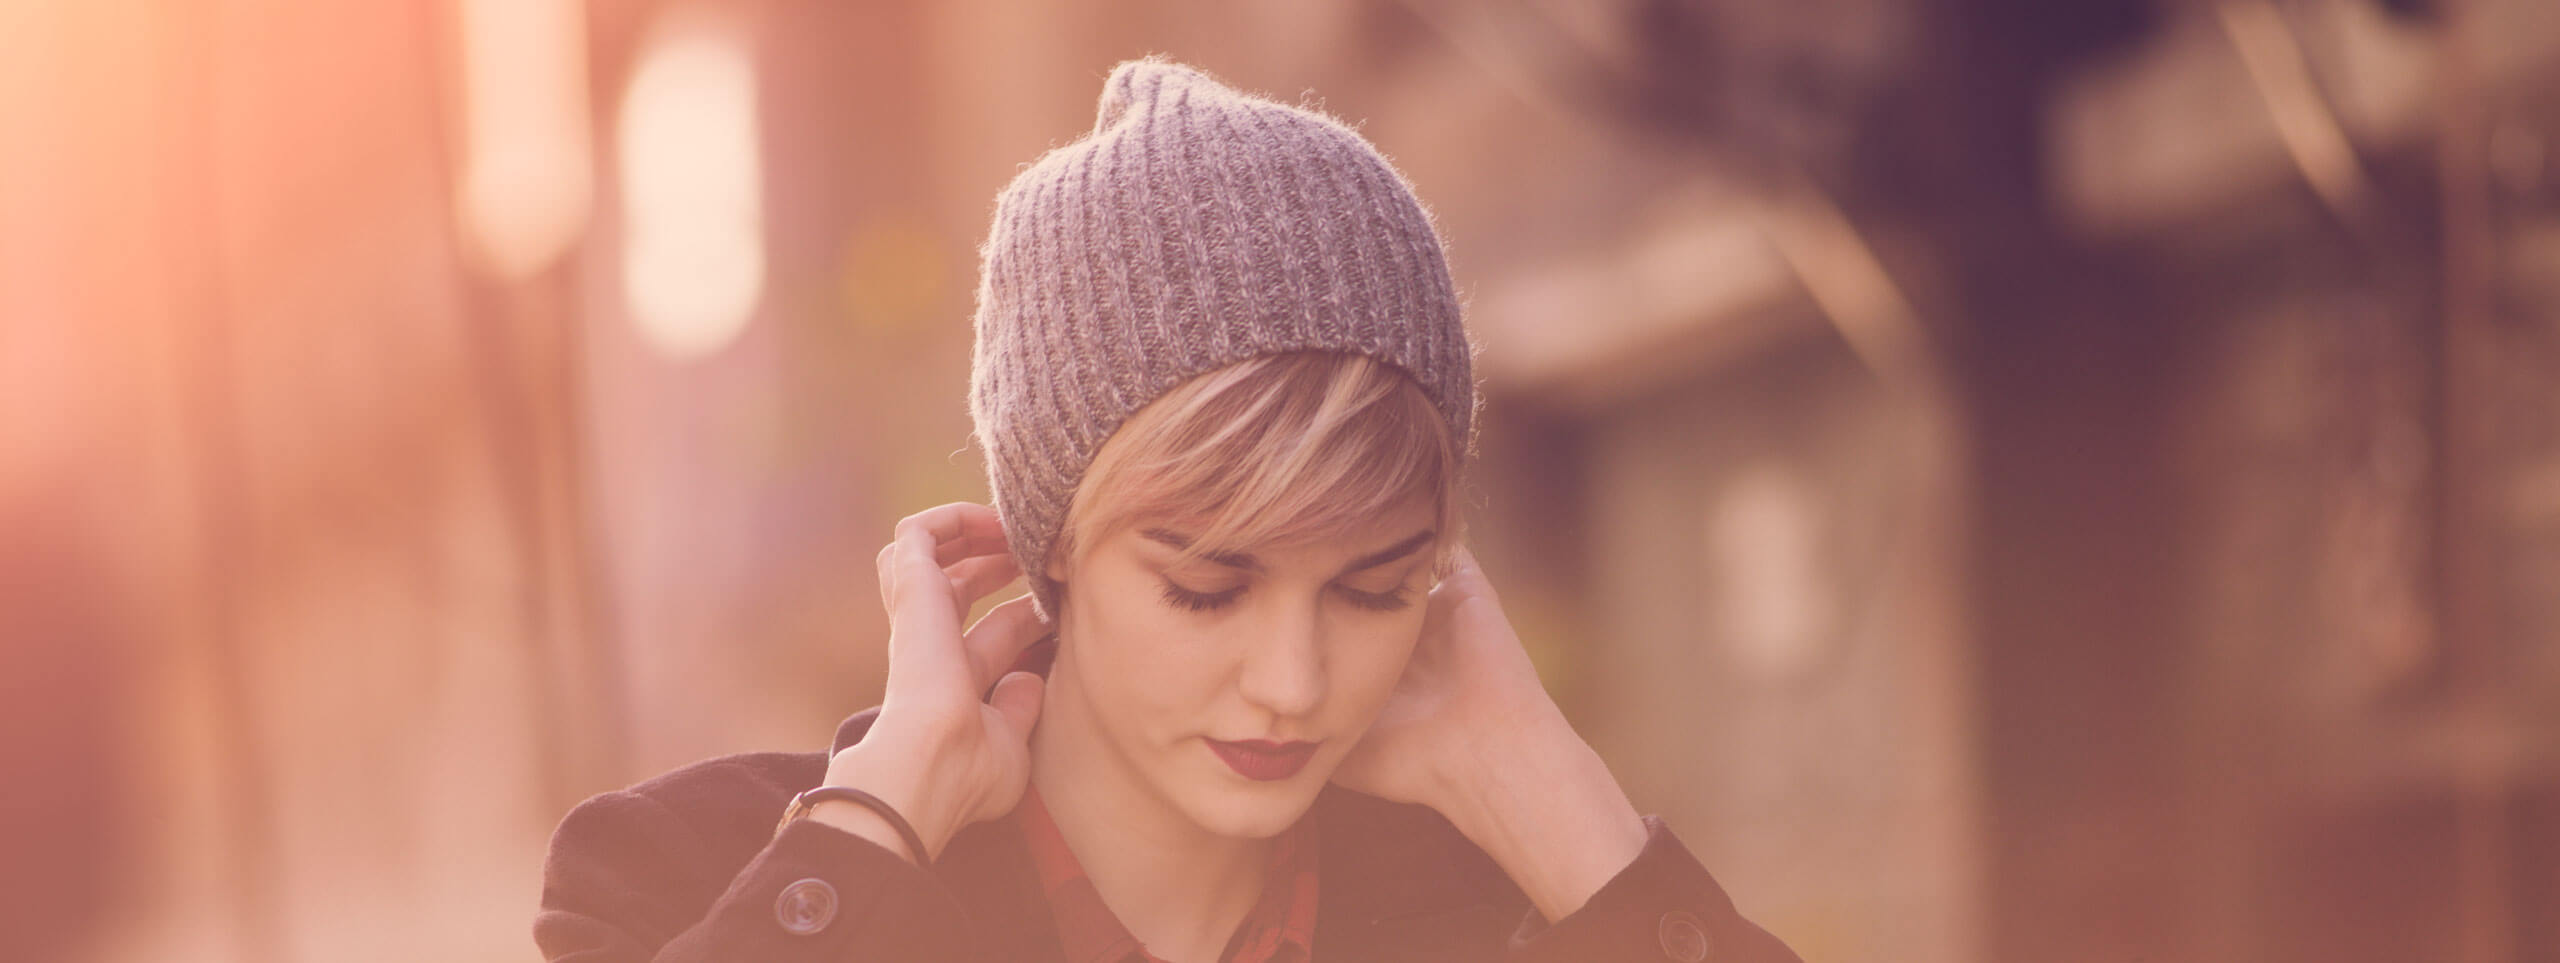 Woman with short hairstyle wearing a beanie